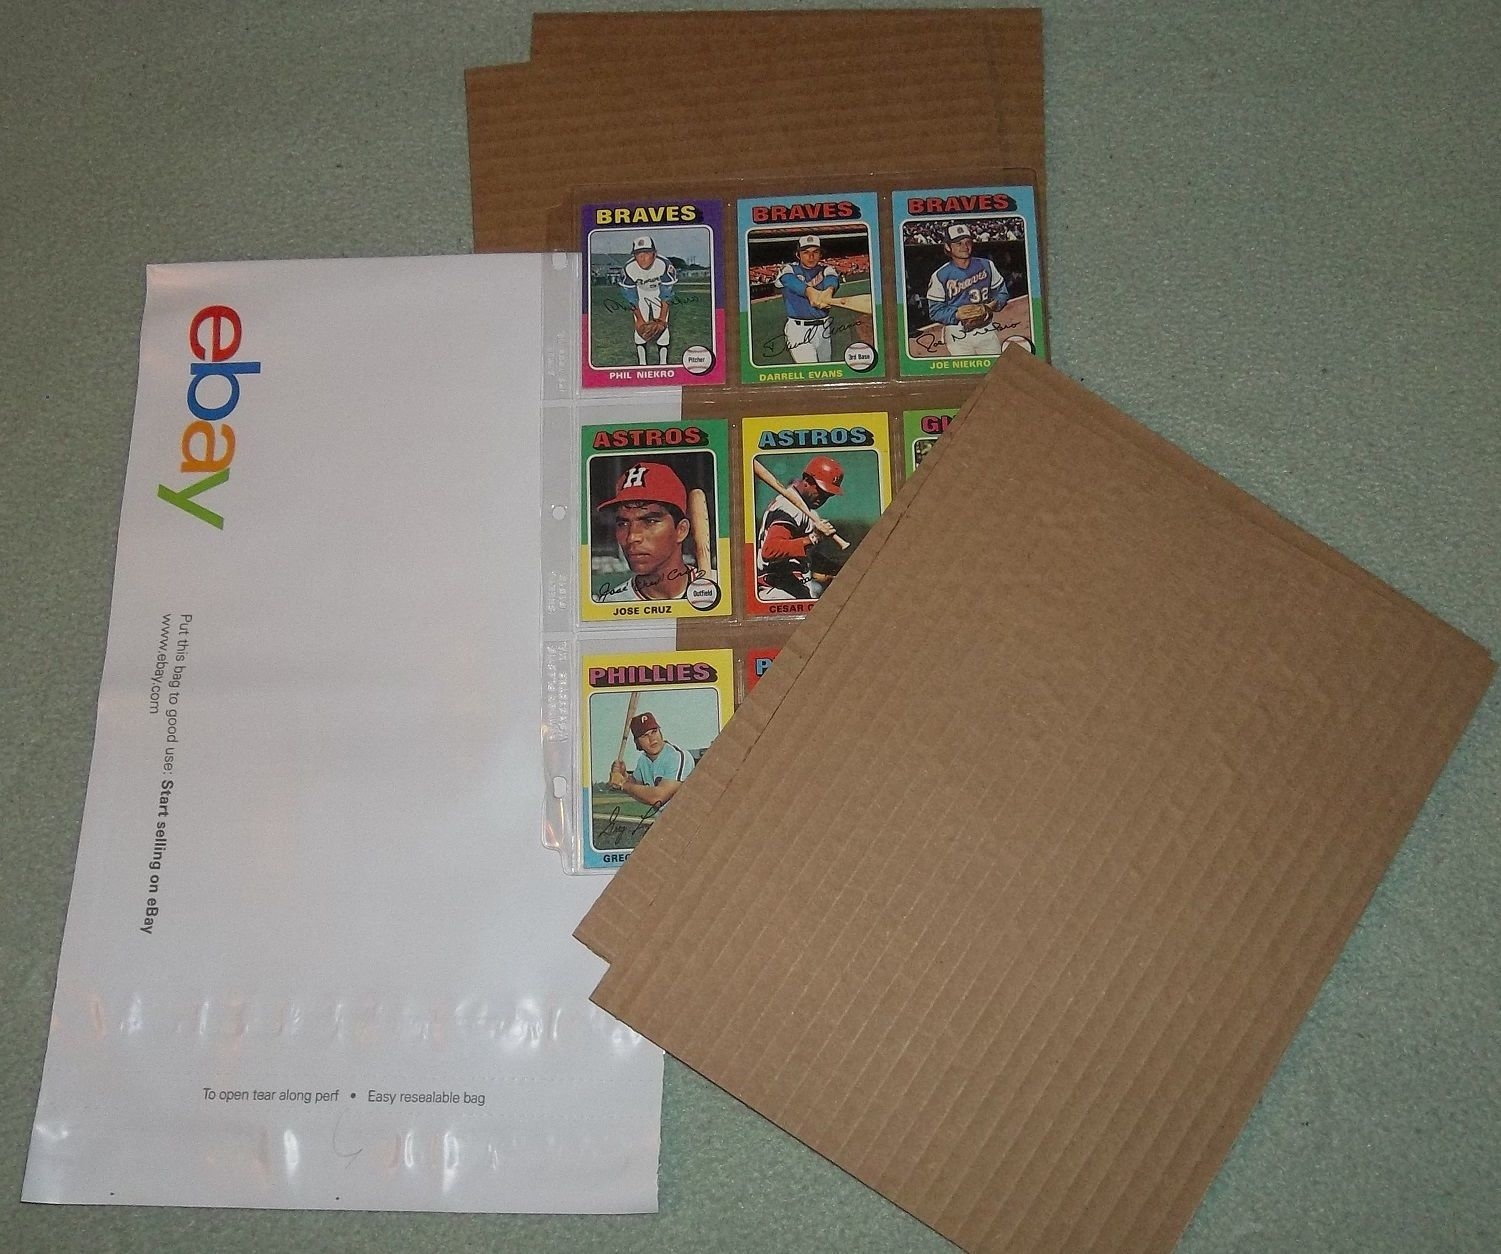 Topps Kmart 20th Anniversary Baseball Card And Similar Items